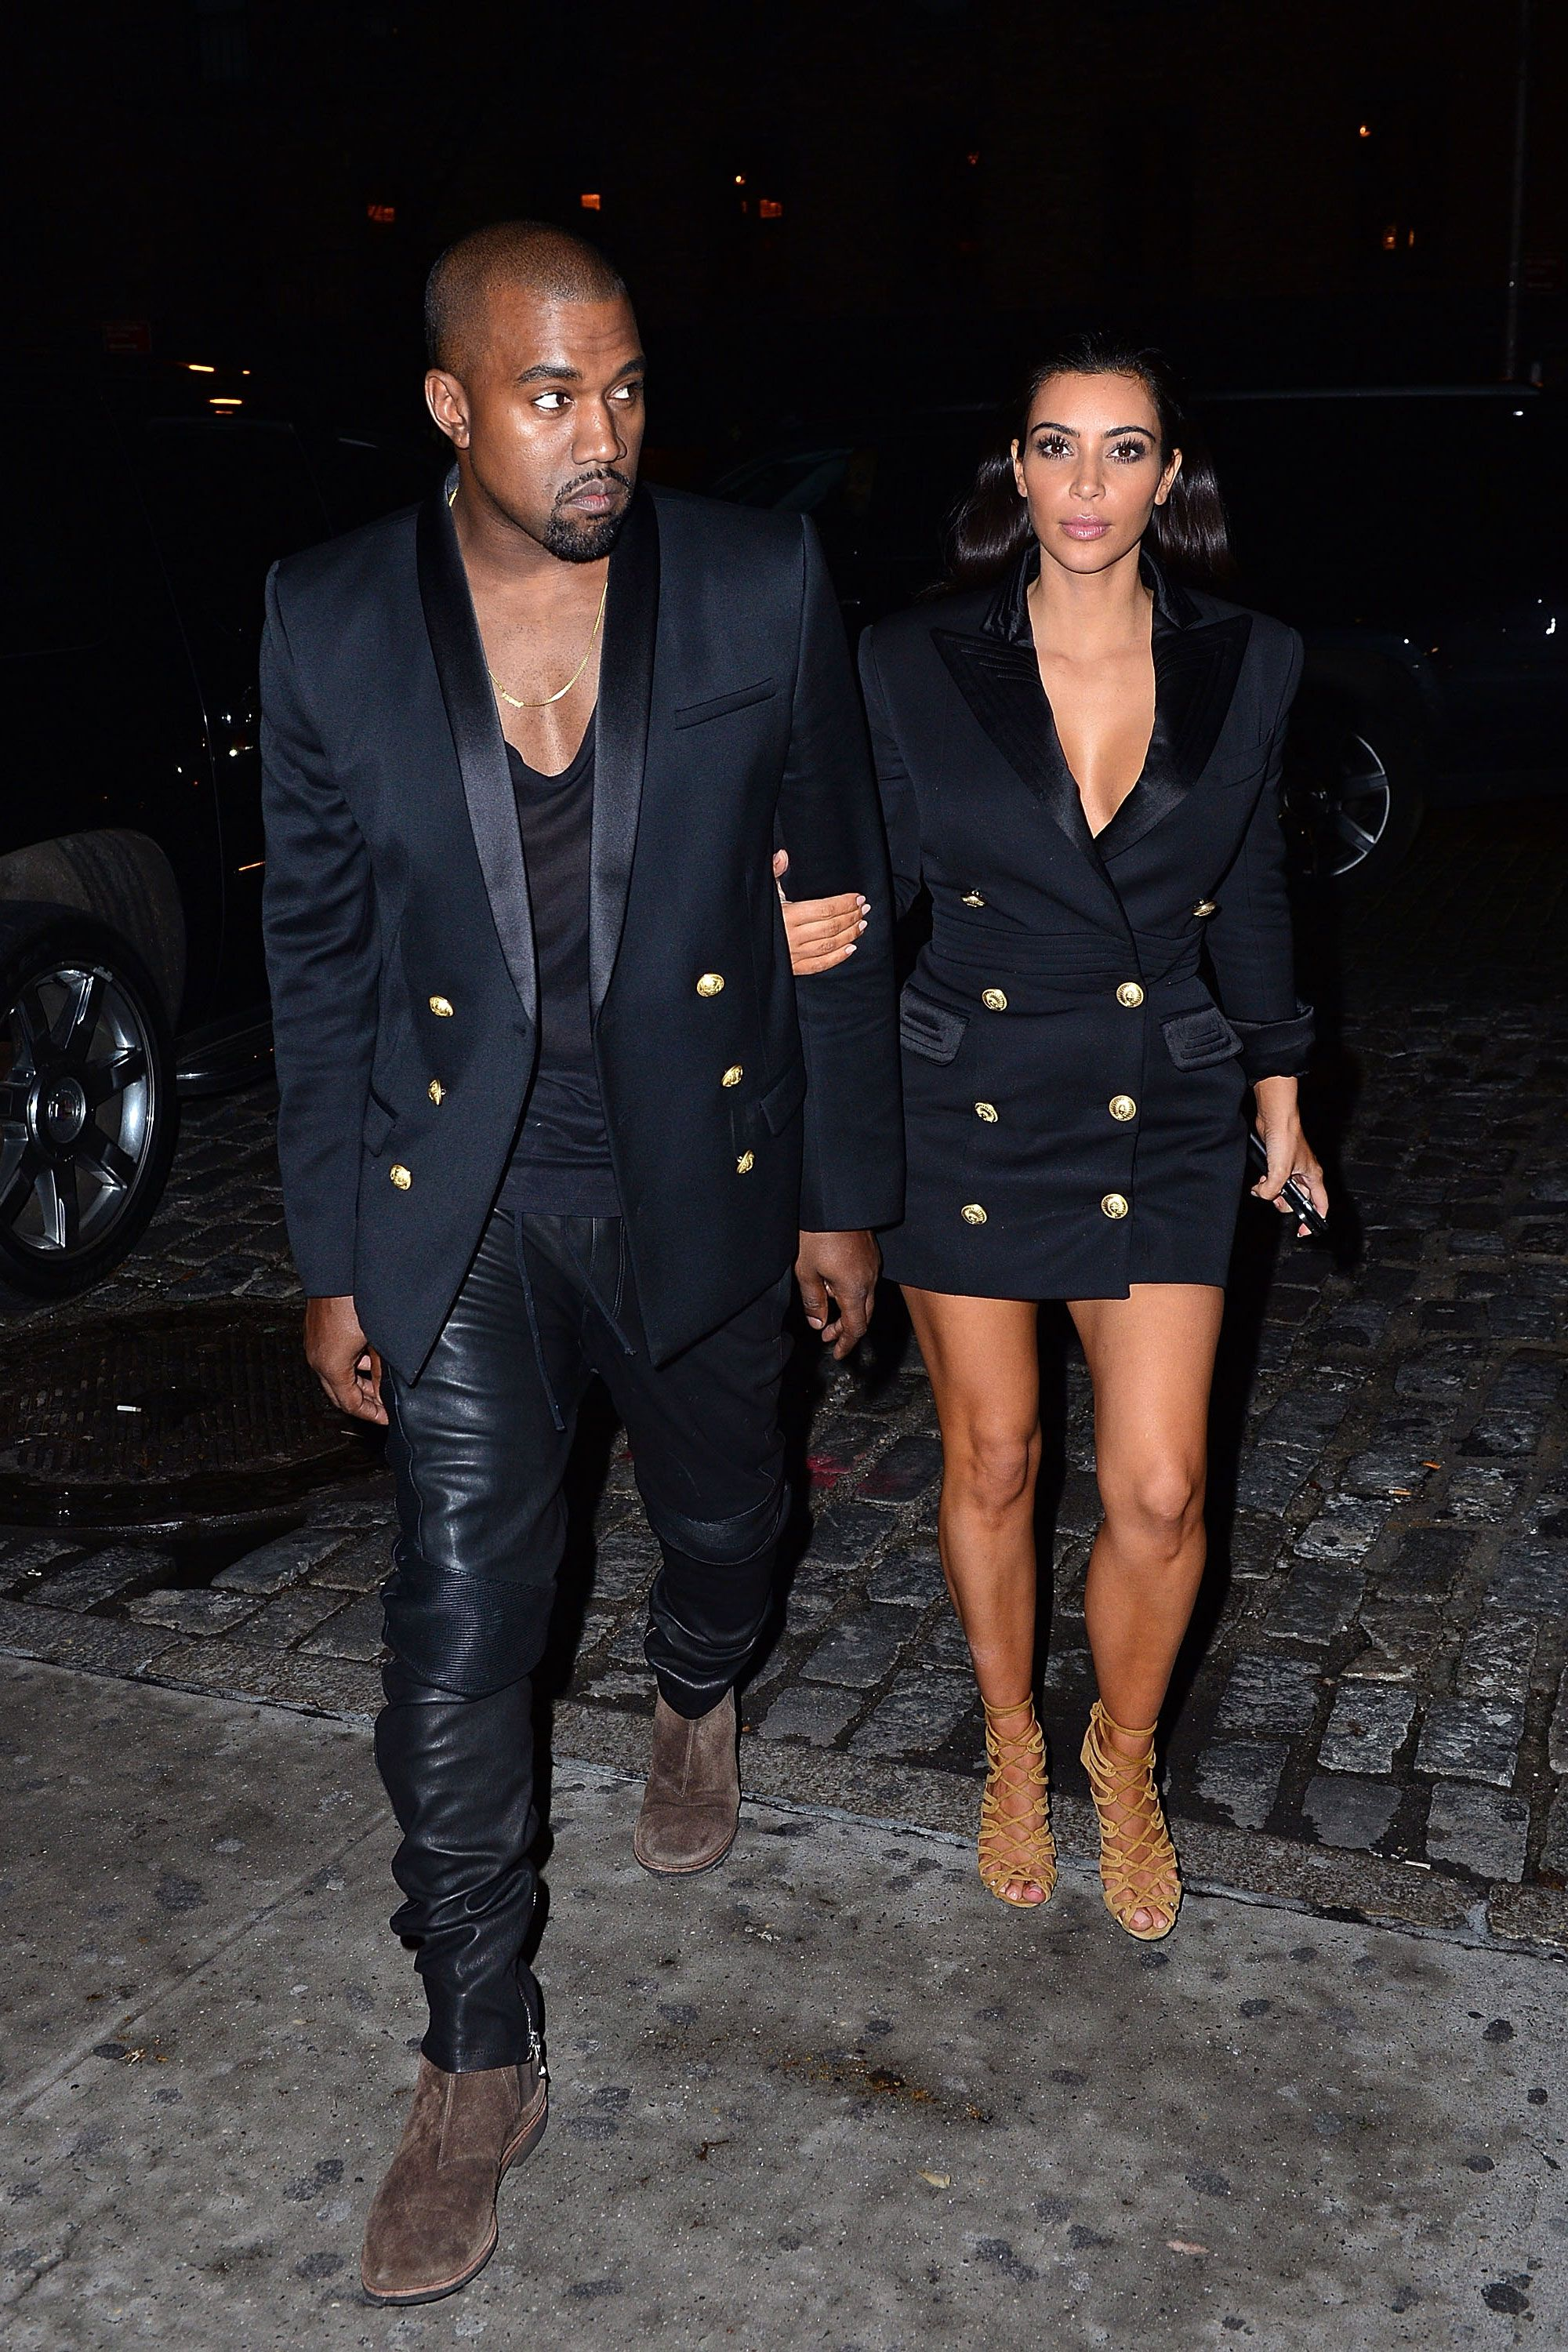 f2f97ec3bb5a6 What  The couple stepped out for dinner in matching Balmain jackets. When   November 2014 Where  NYC - HarpersBAZAAR.com